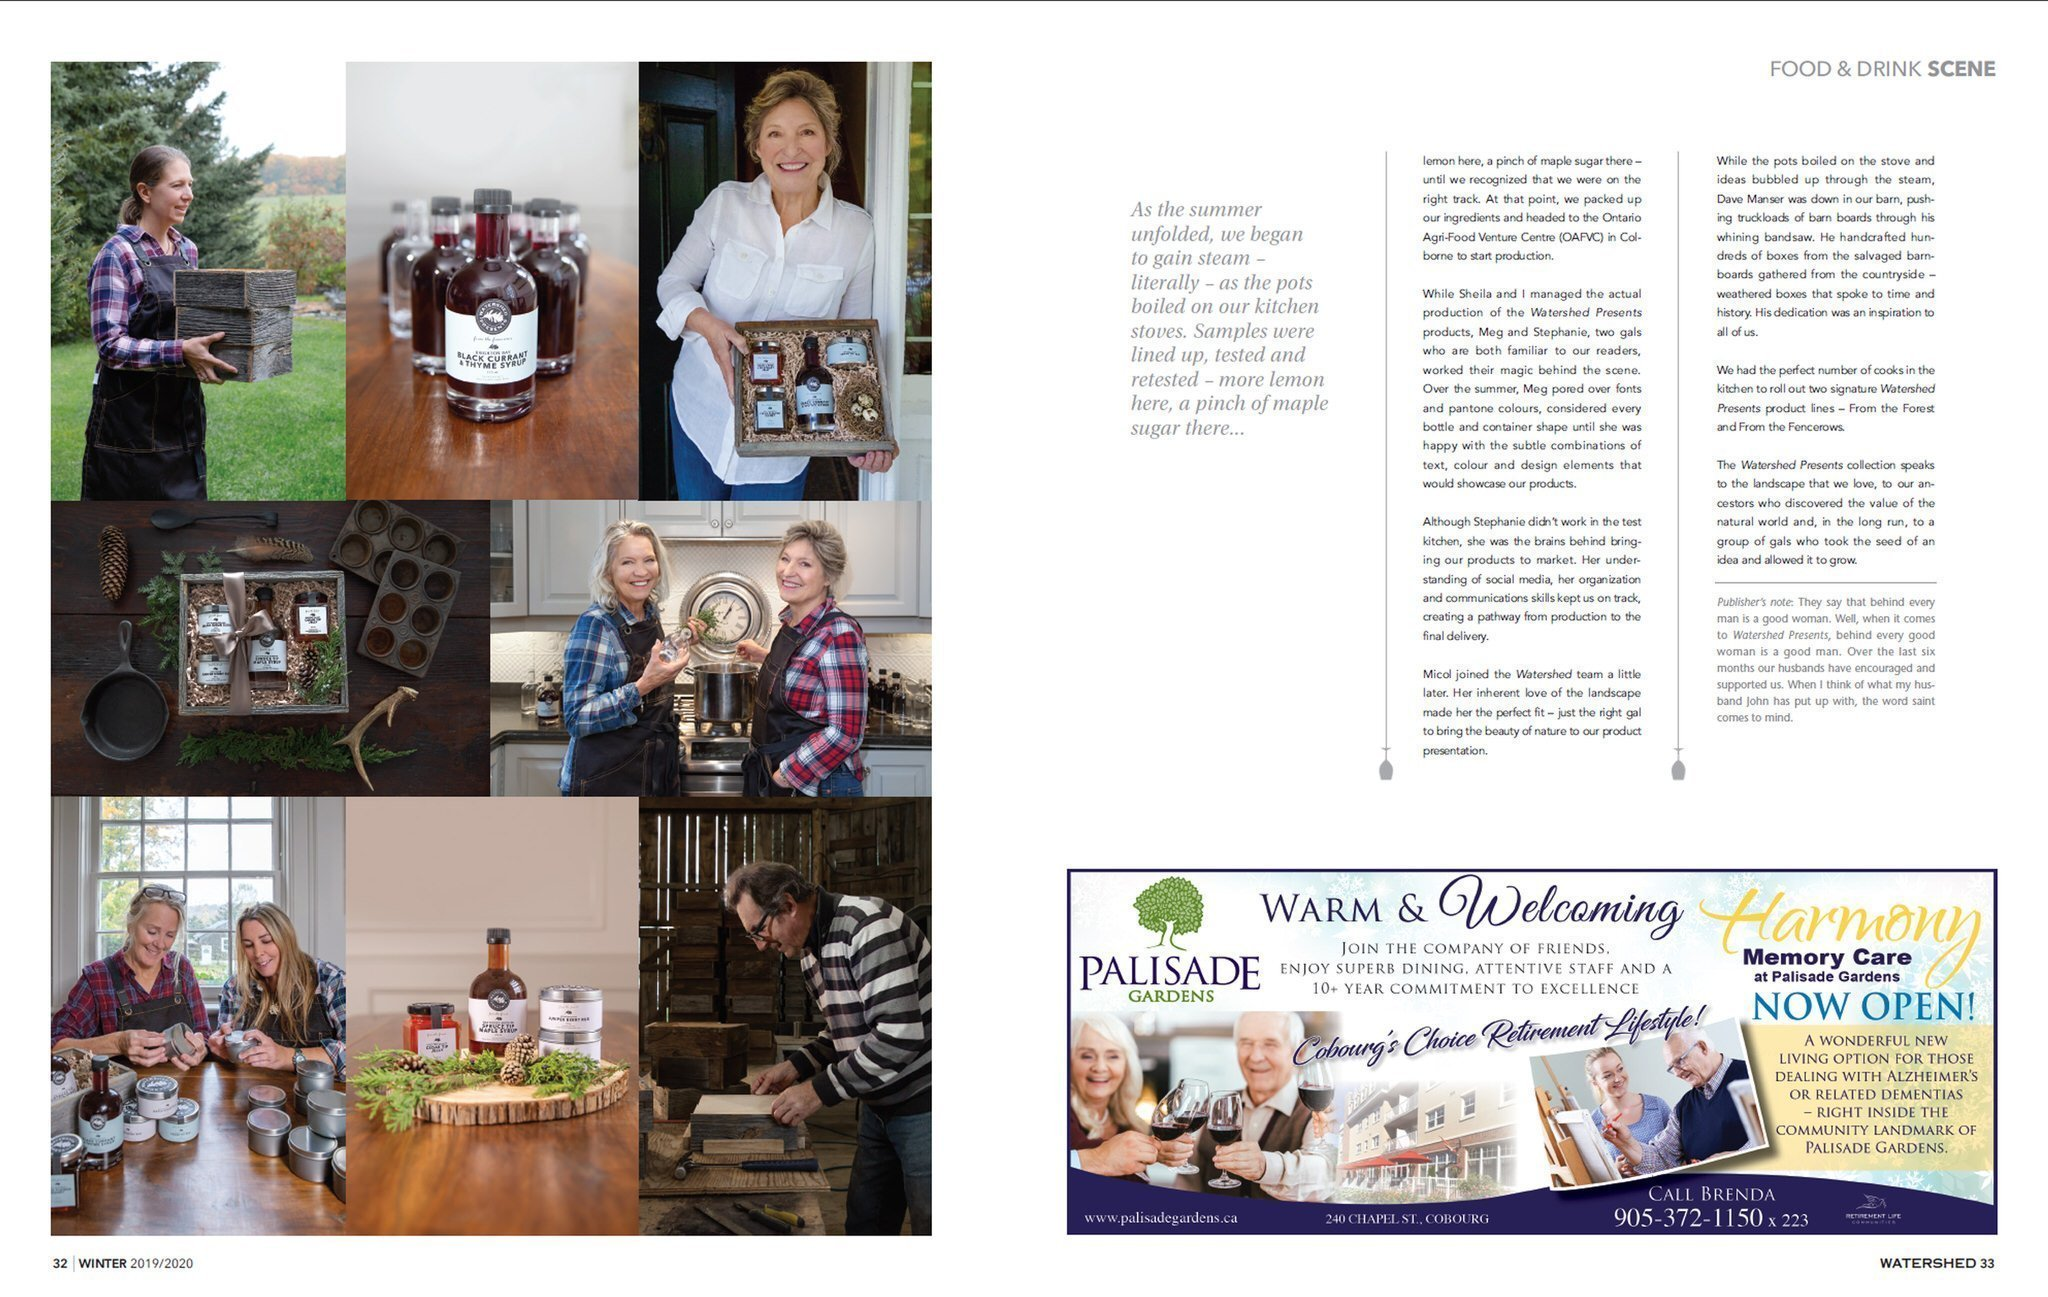 alana lee photography commercial images including products, food, beverage, lifestyle, editorials